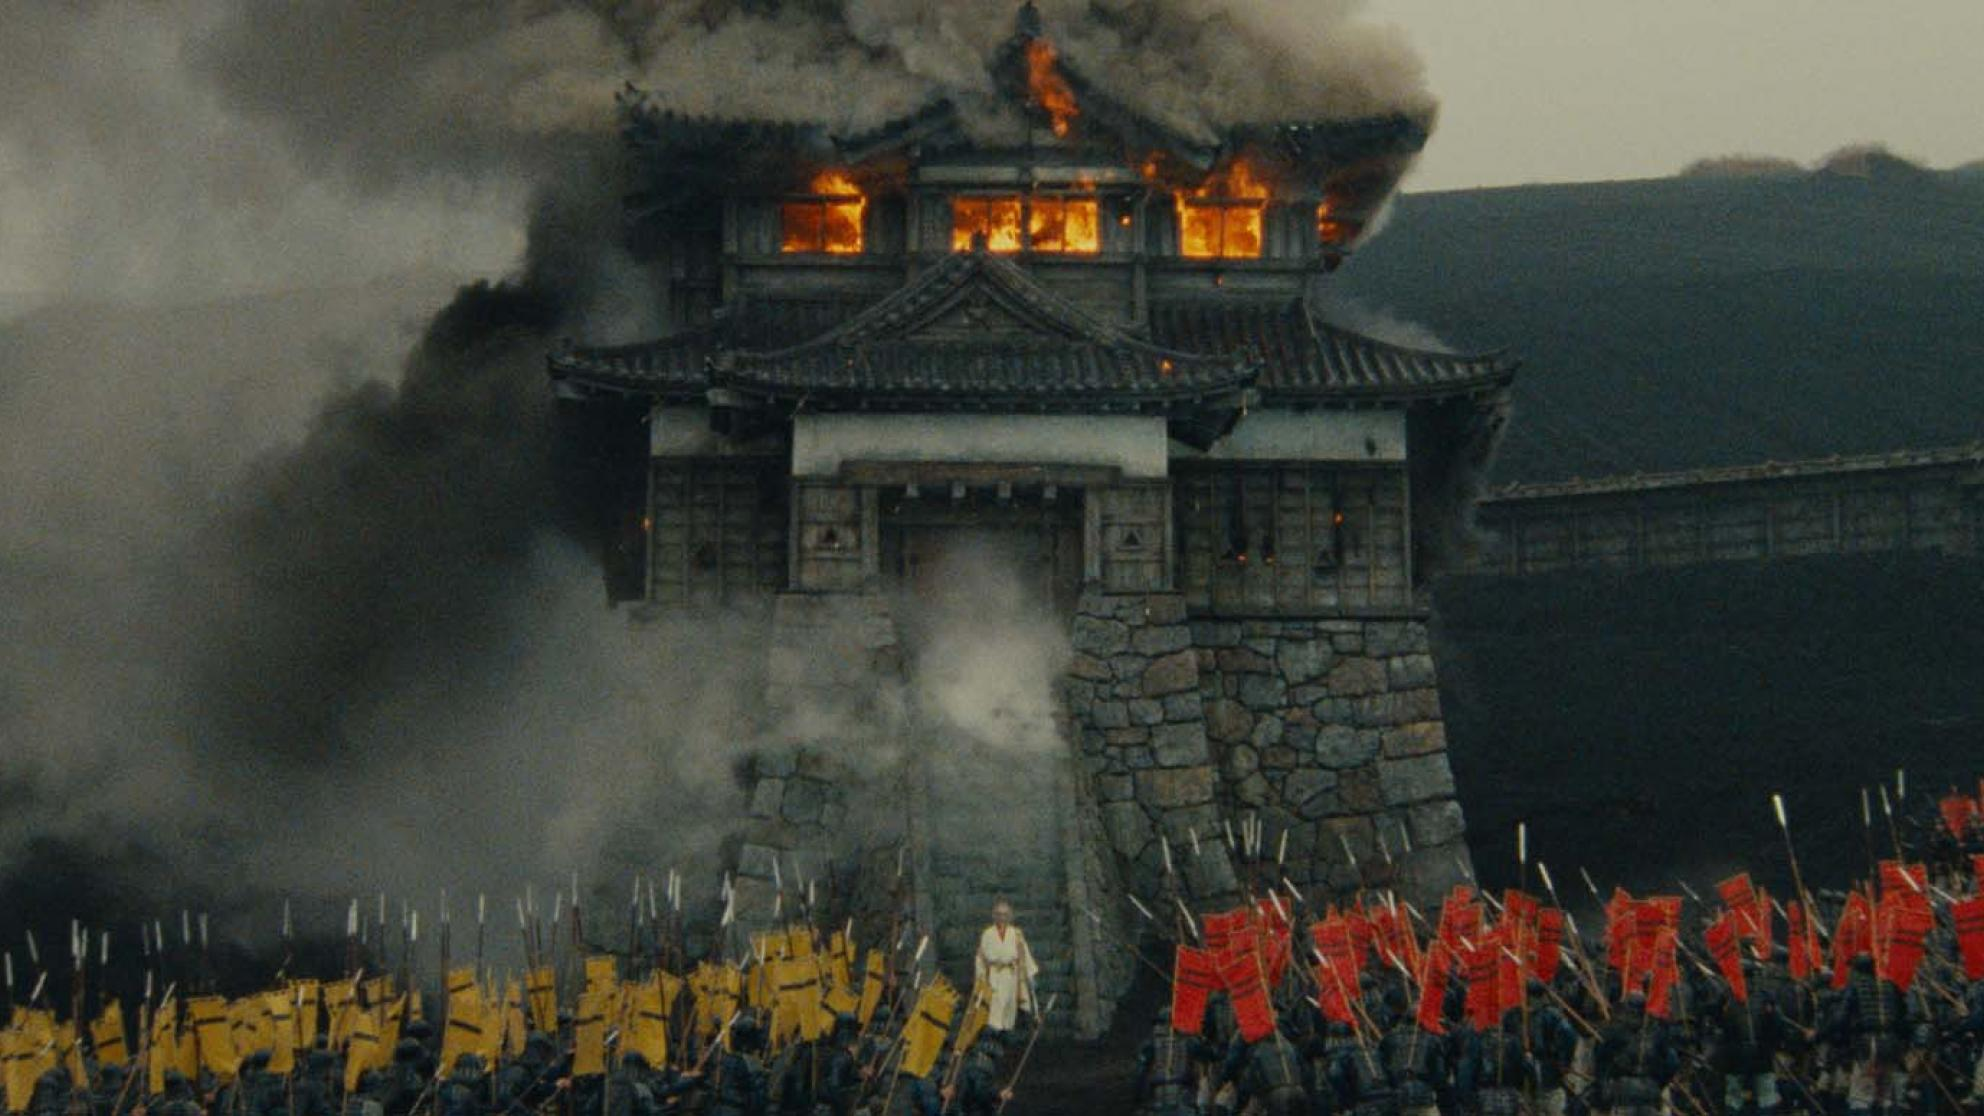 Film still from RAN of a Japanese castle on fire surrounded by an army.